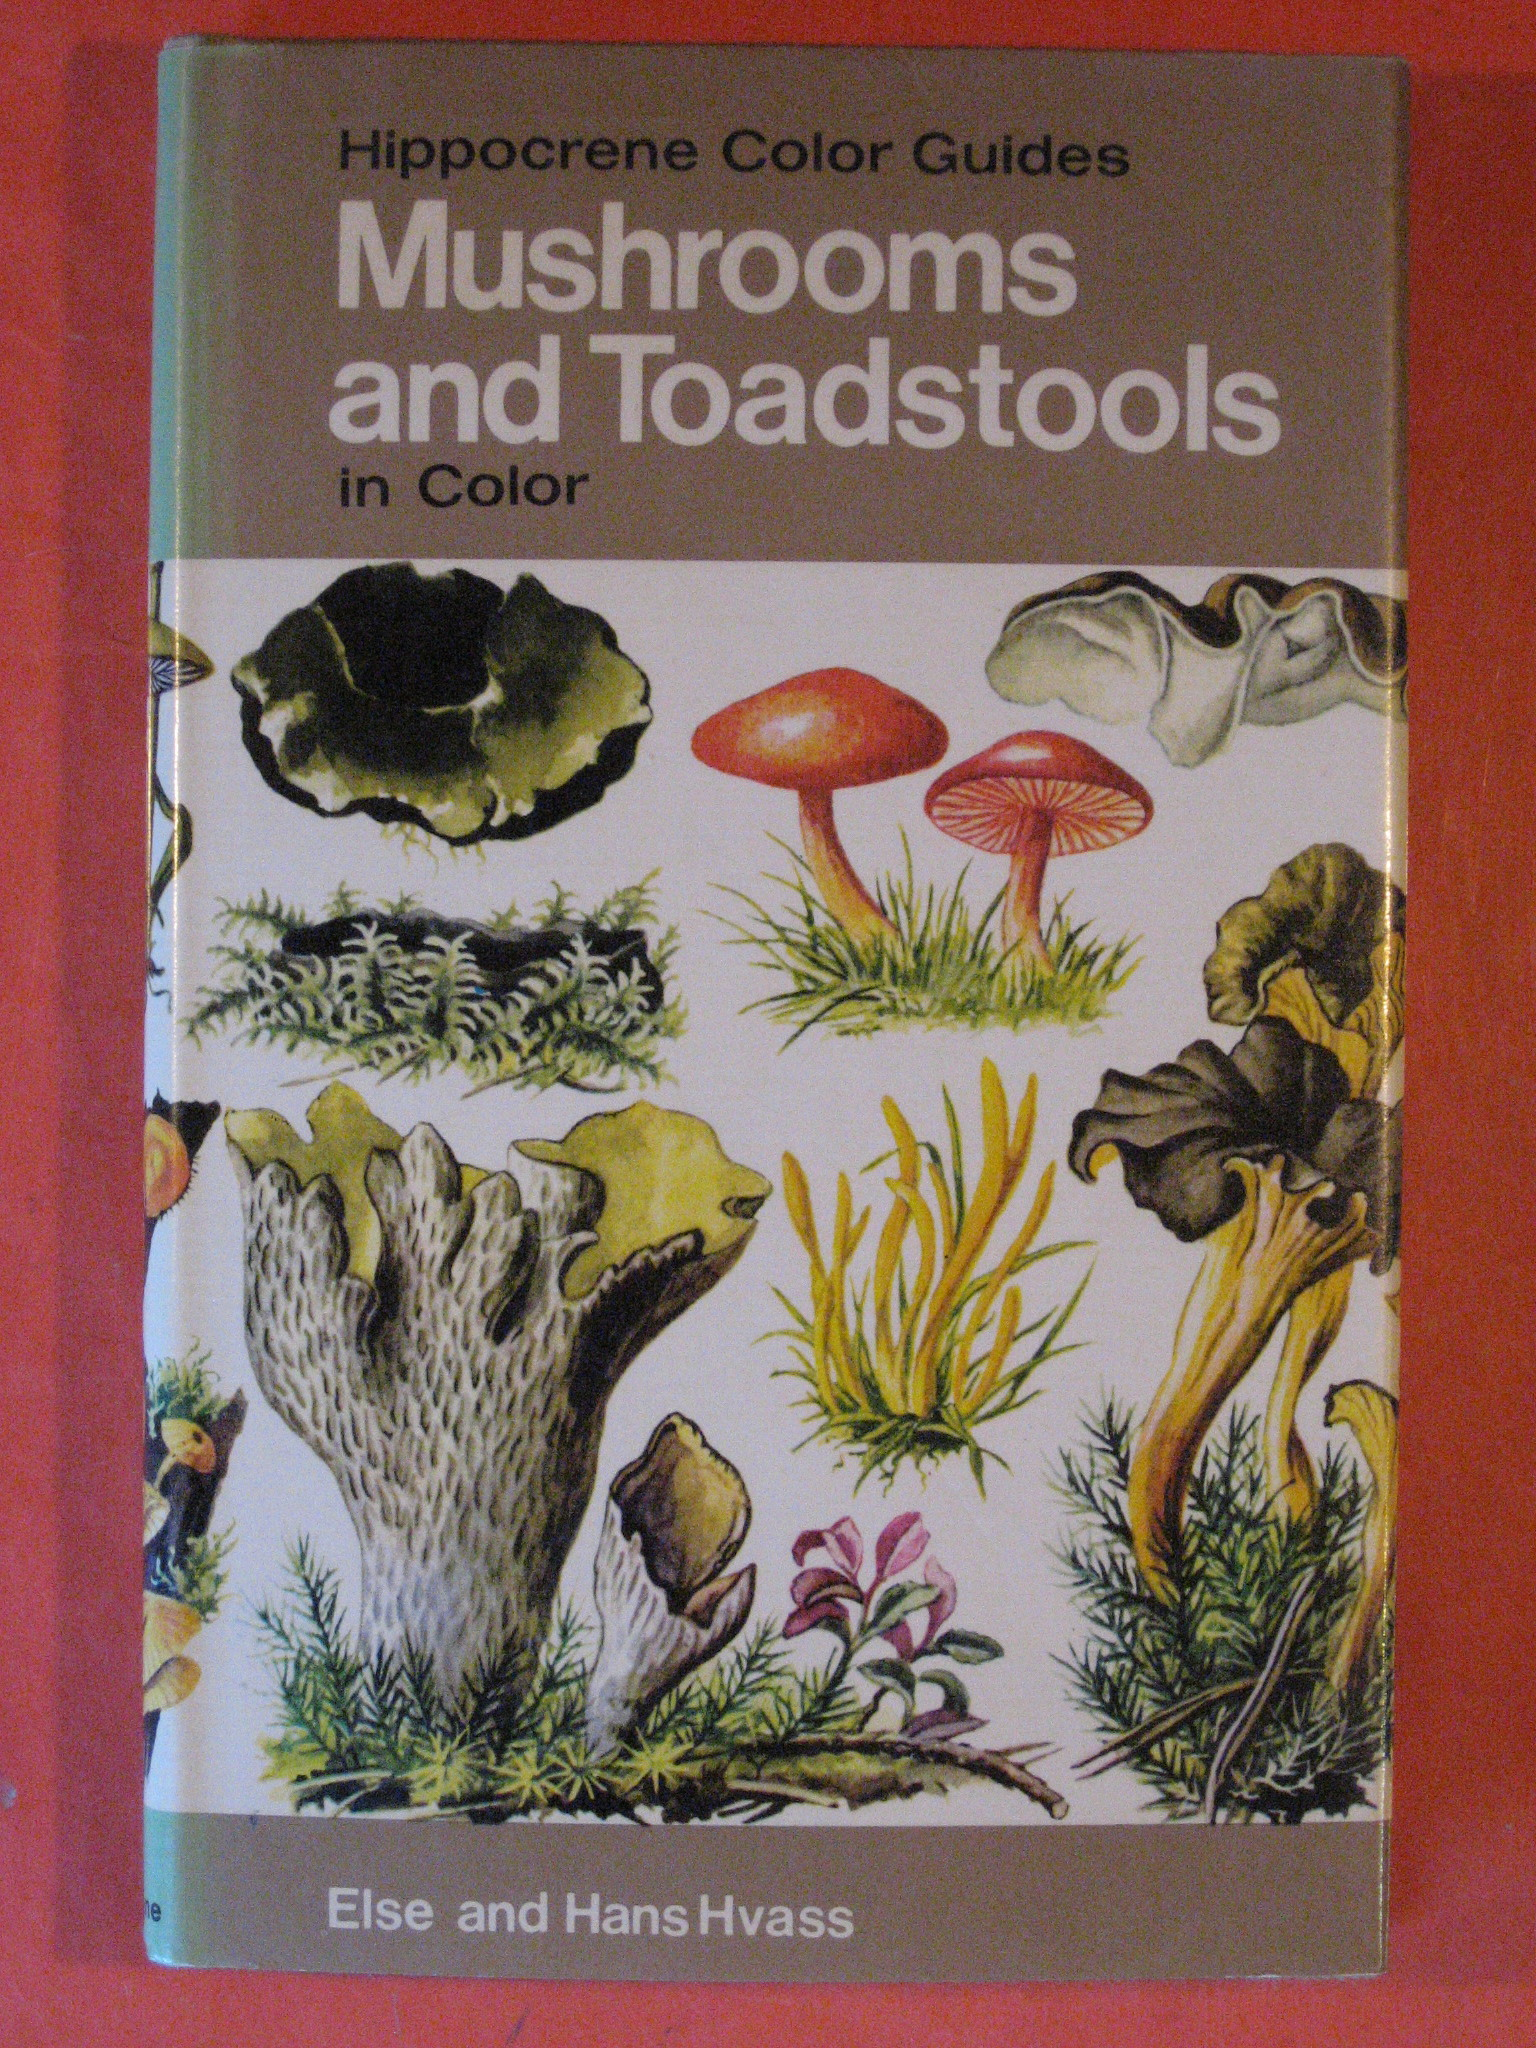 Mushrooms and Toadstools in Color  (Hippocrene Color Guides), Hvass, Hans and Else